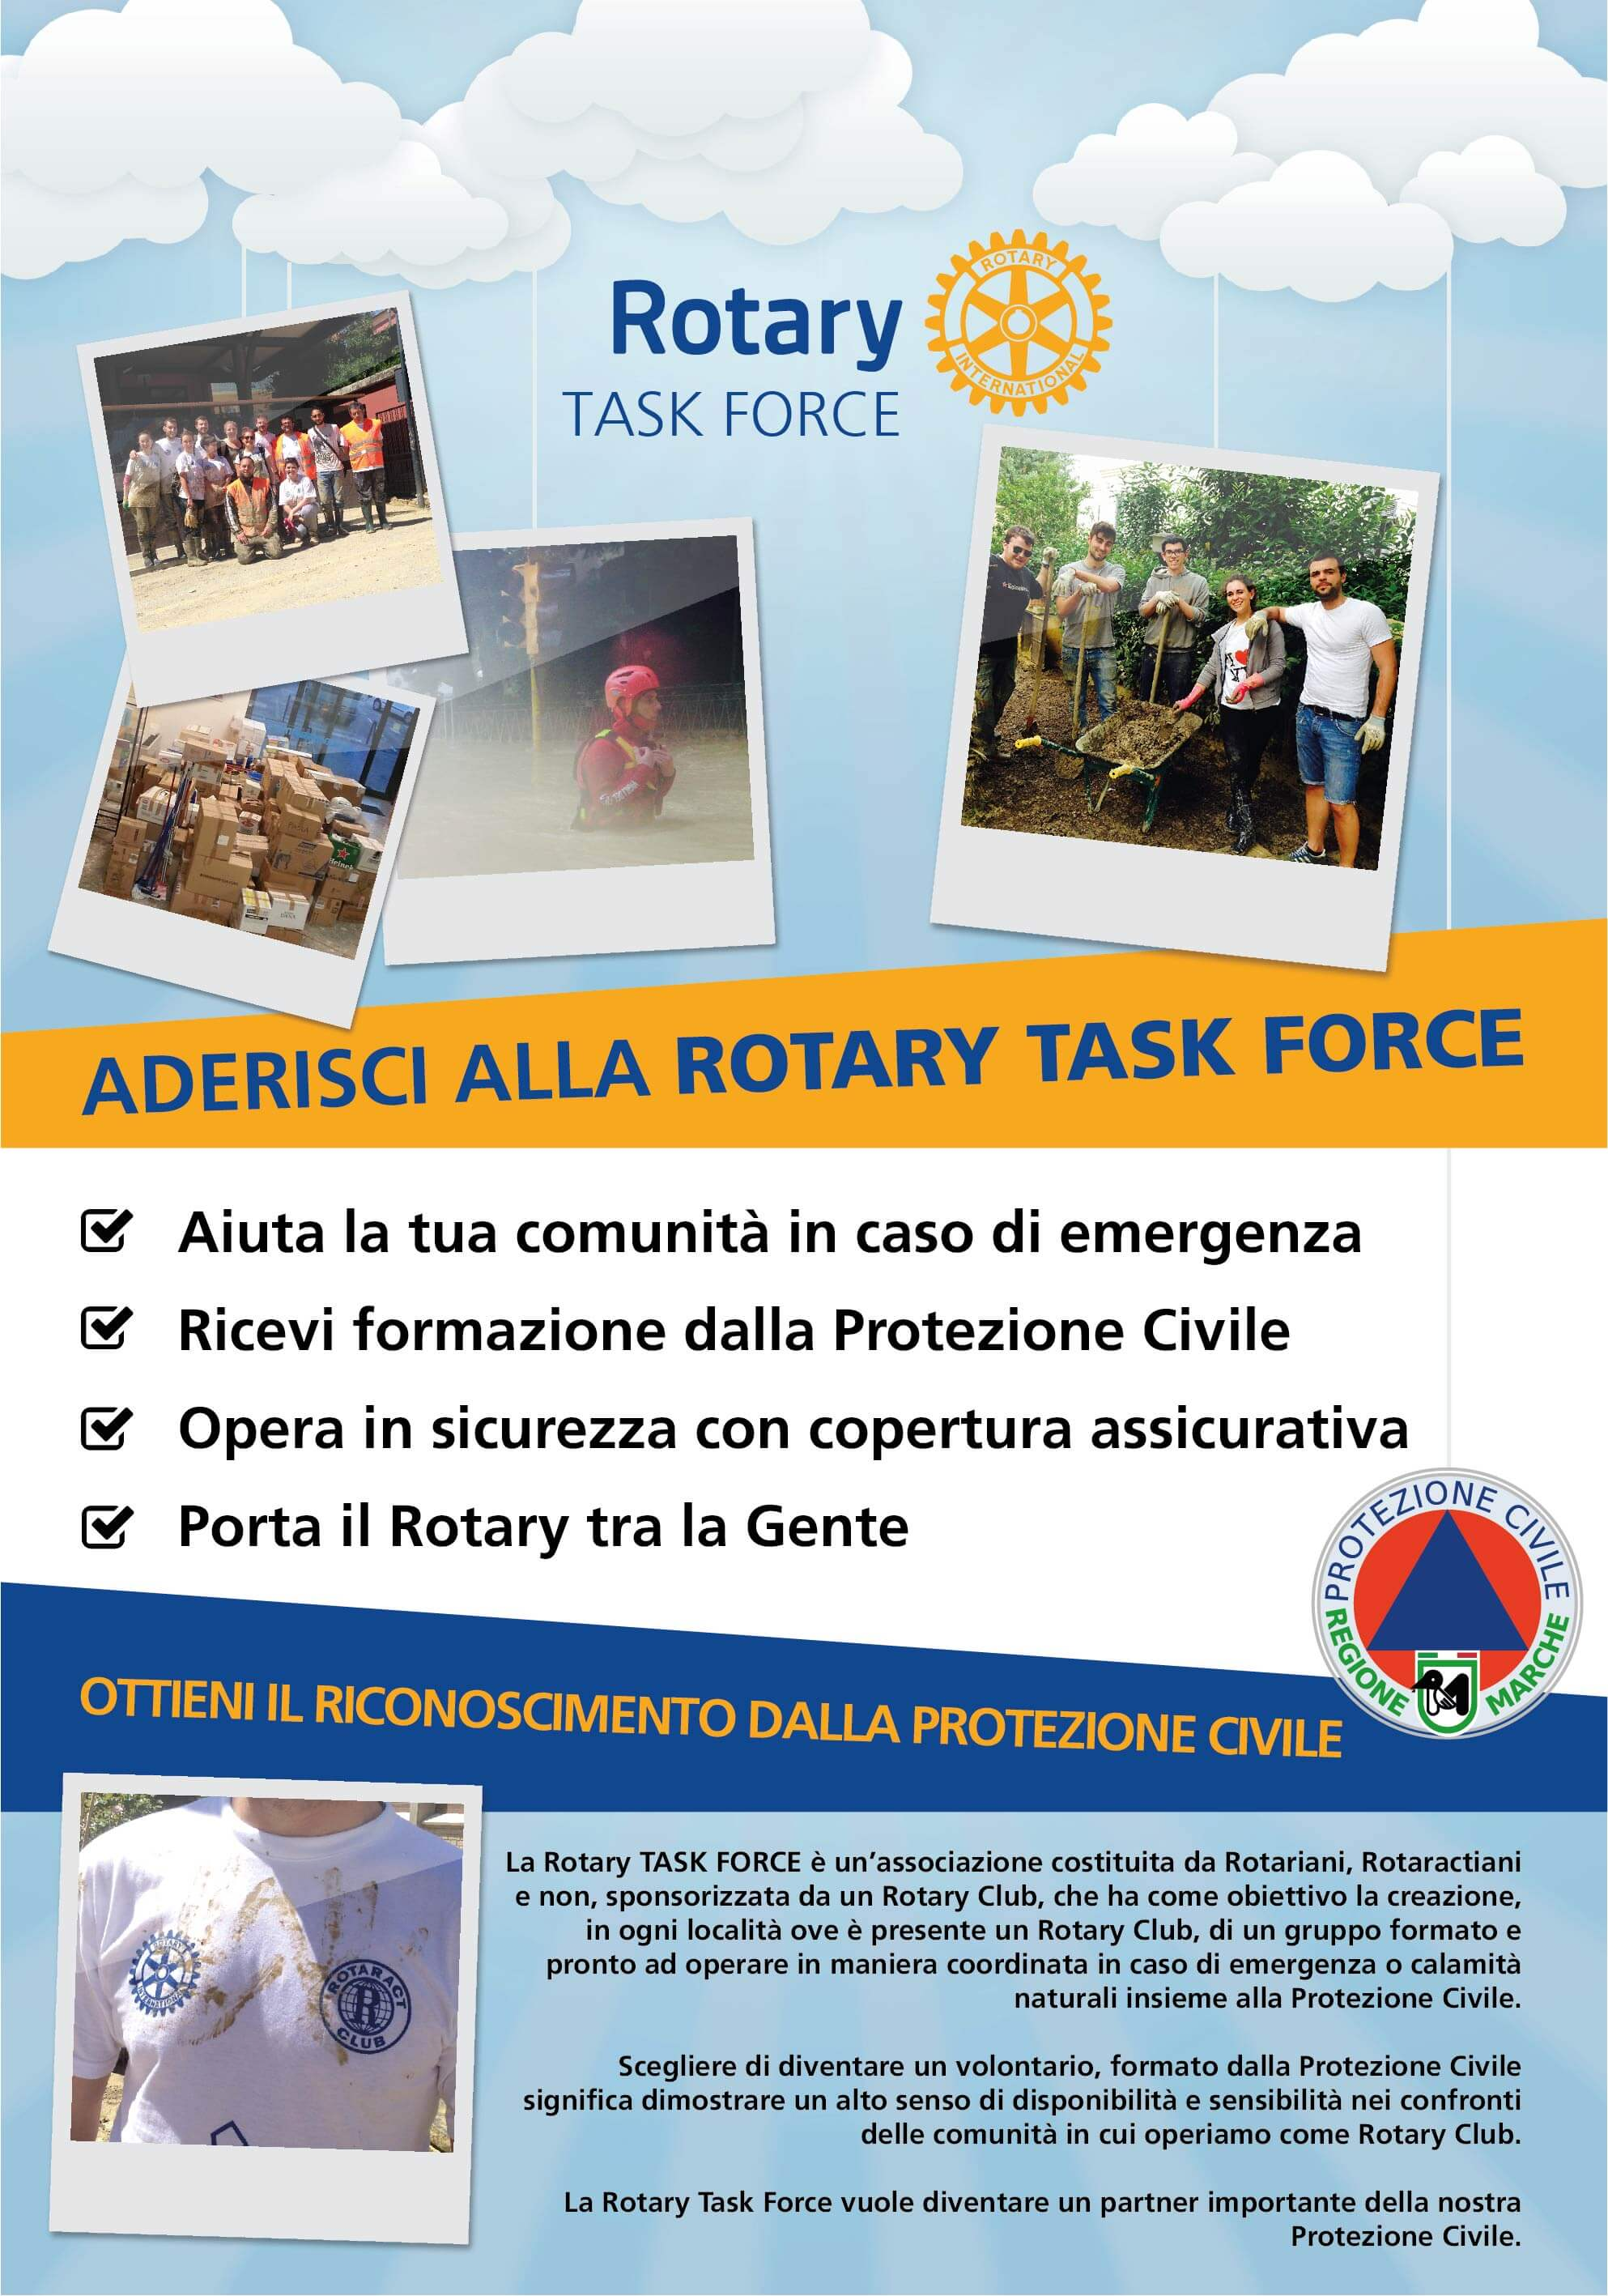 Rotary Task Force